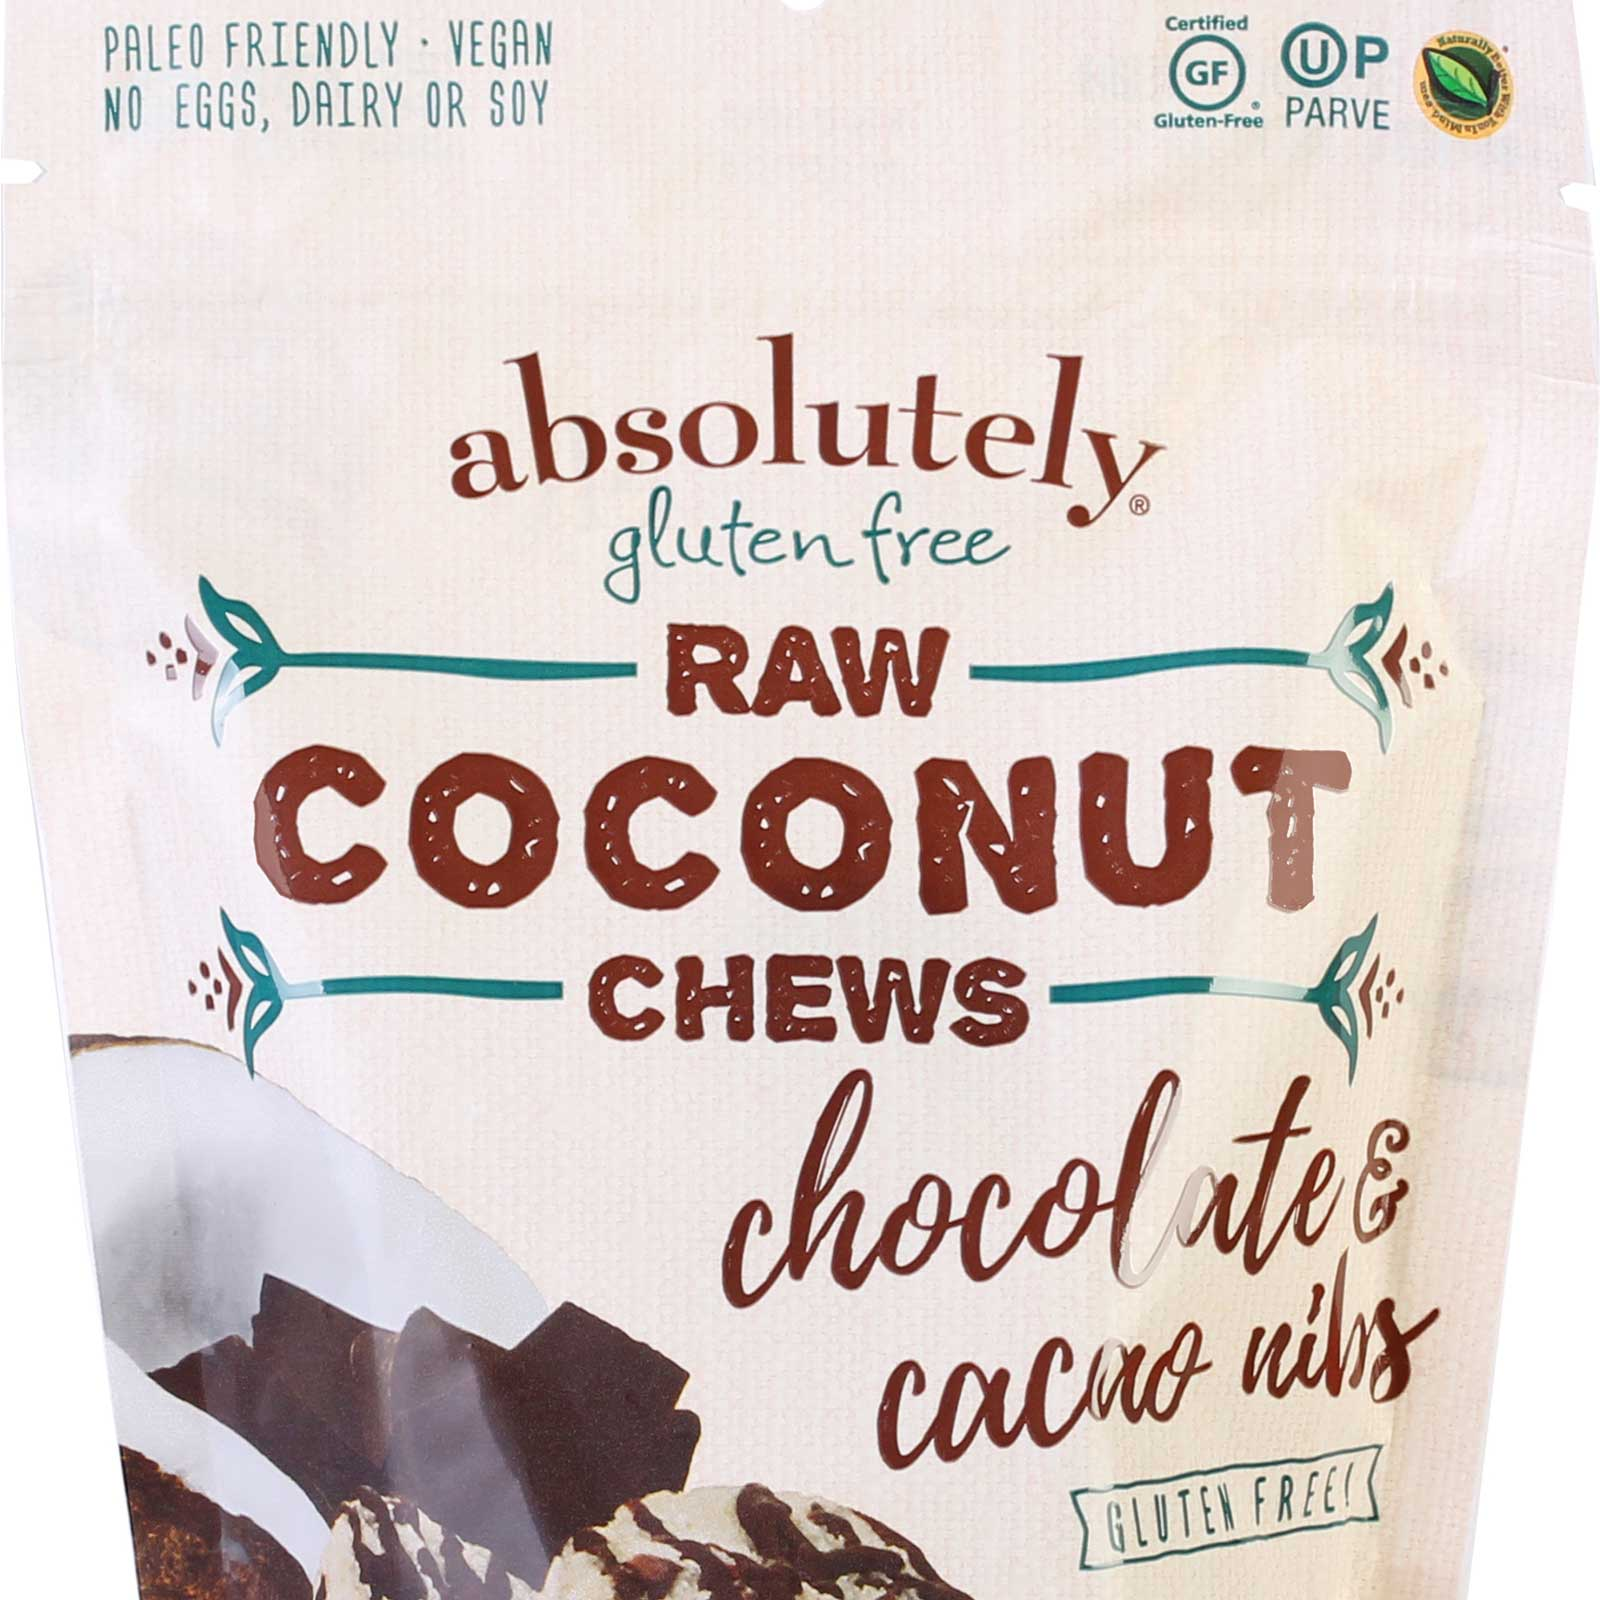 raw coconut chews chocolate